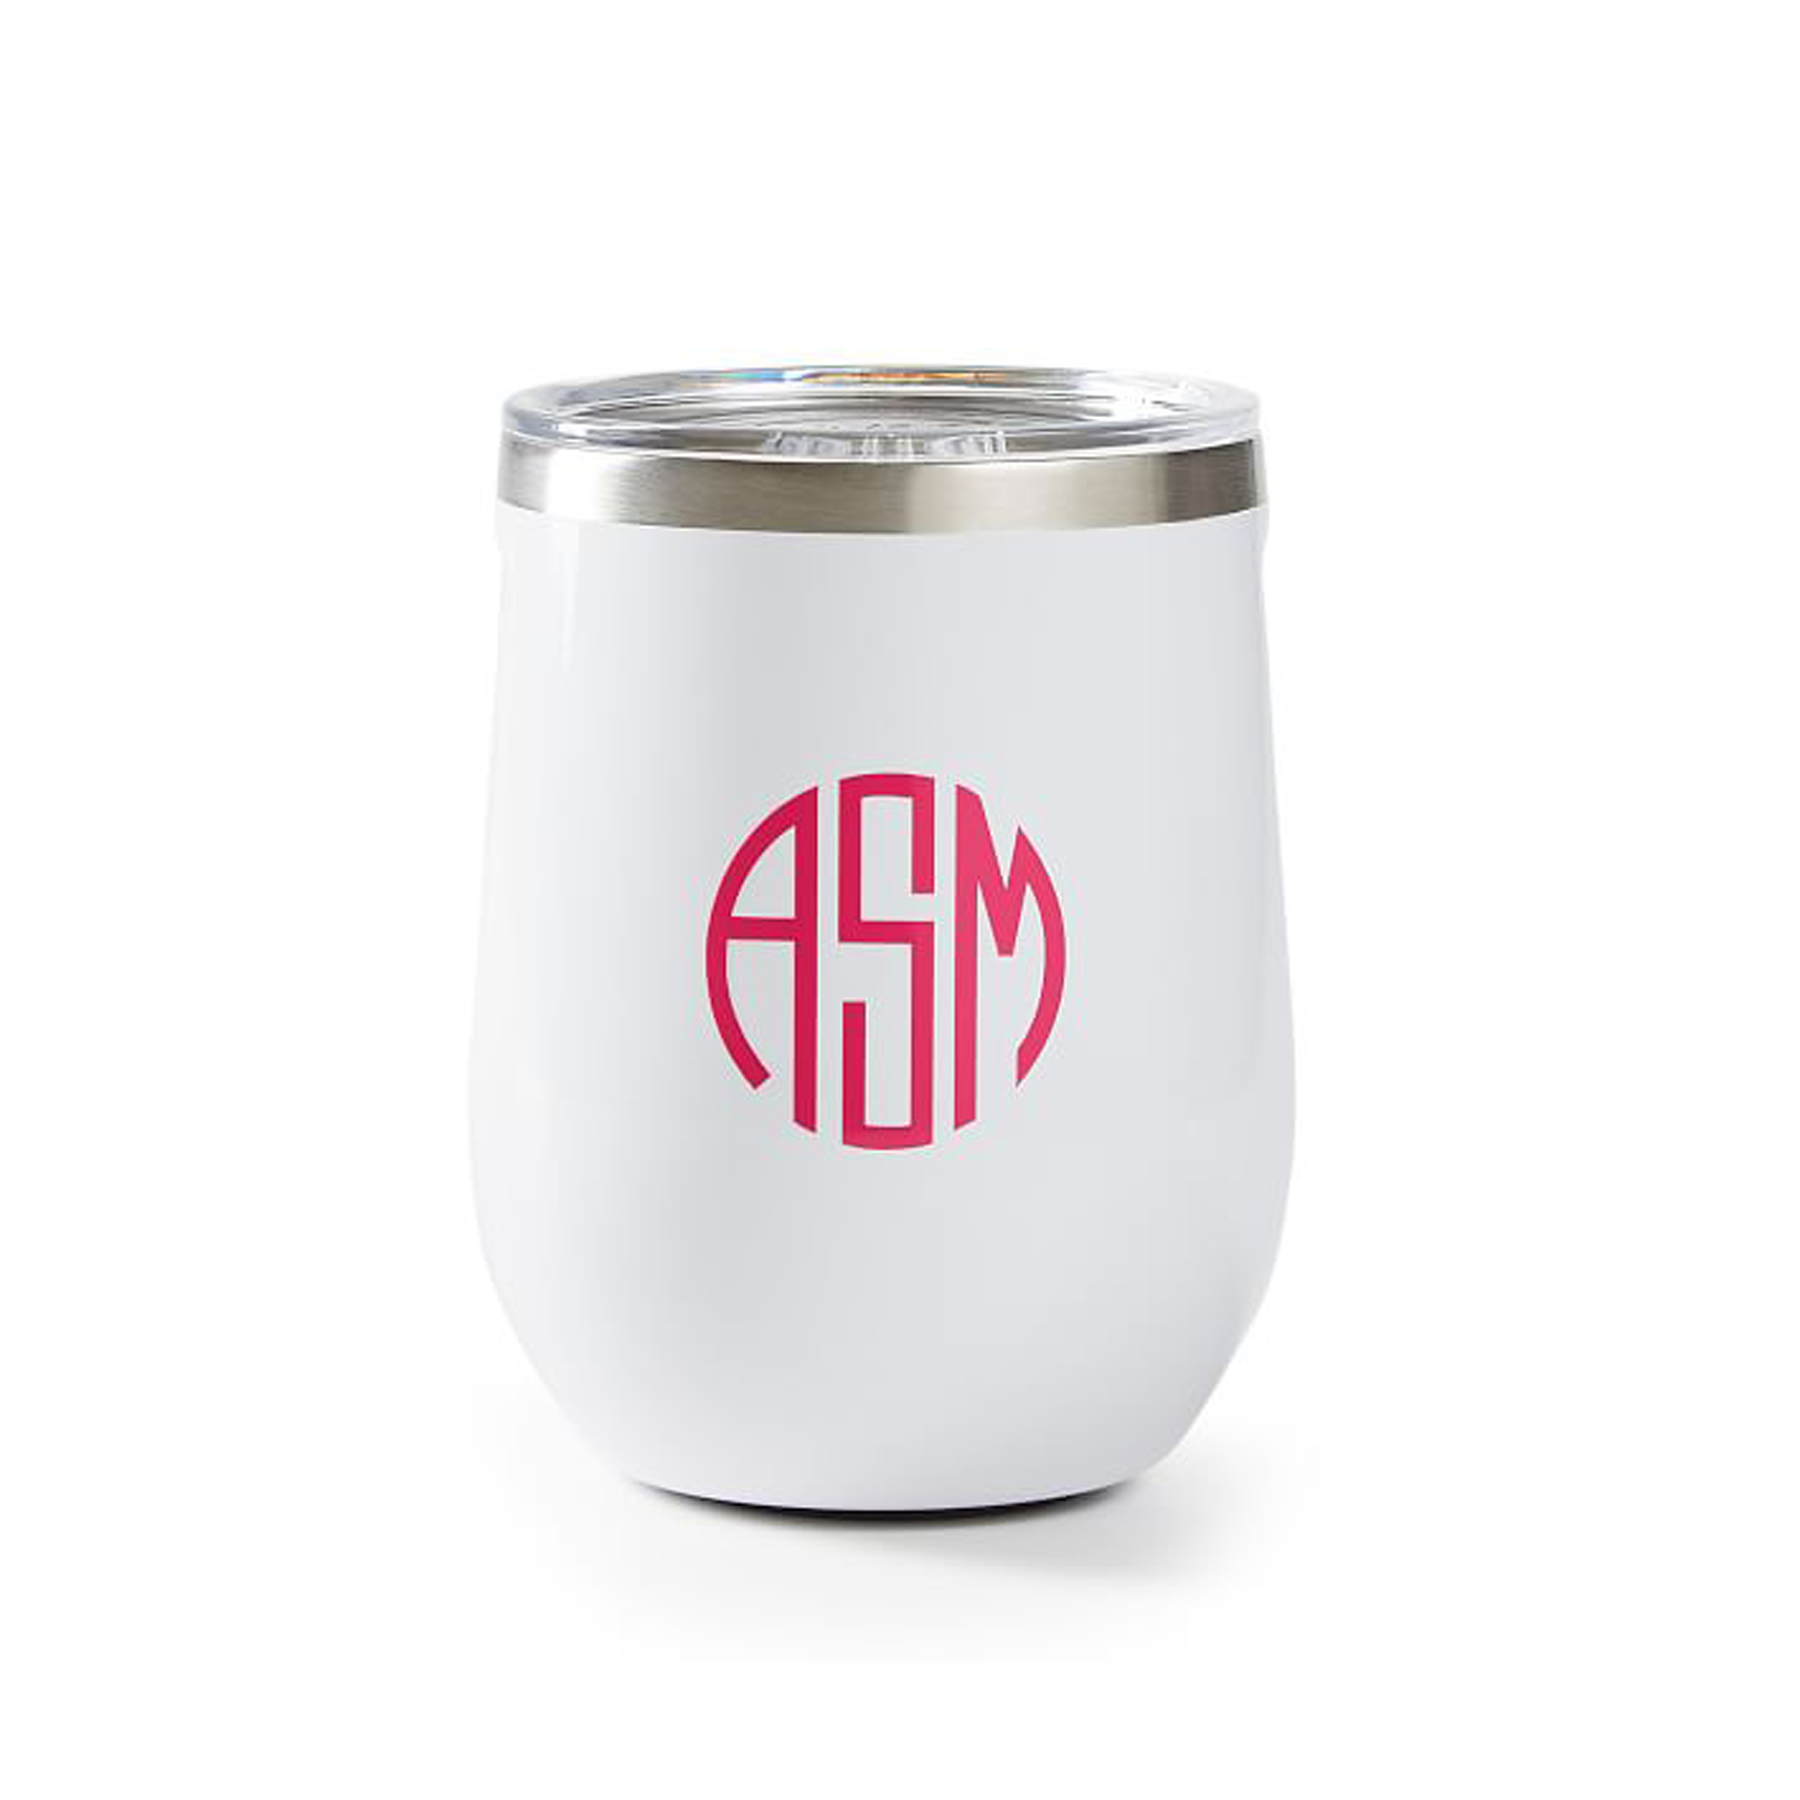 Cheap Christmas Gifts: Corkcicle monogrammed stemless wine cup